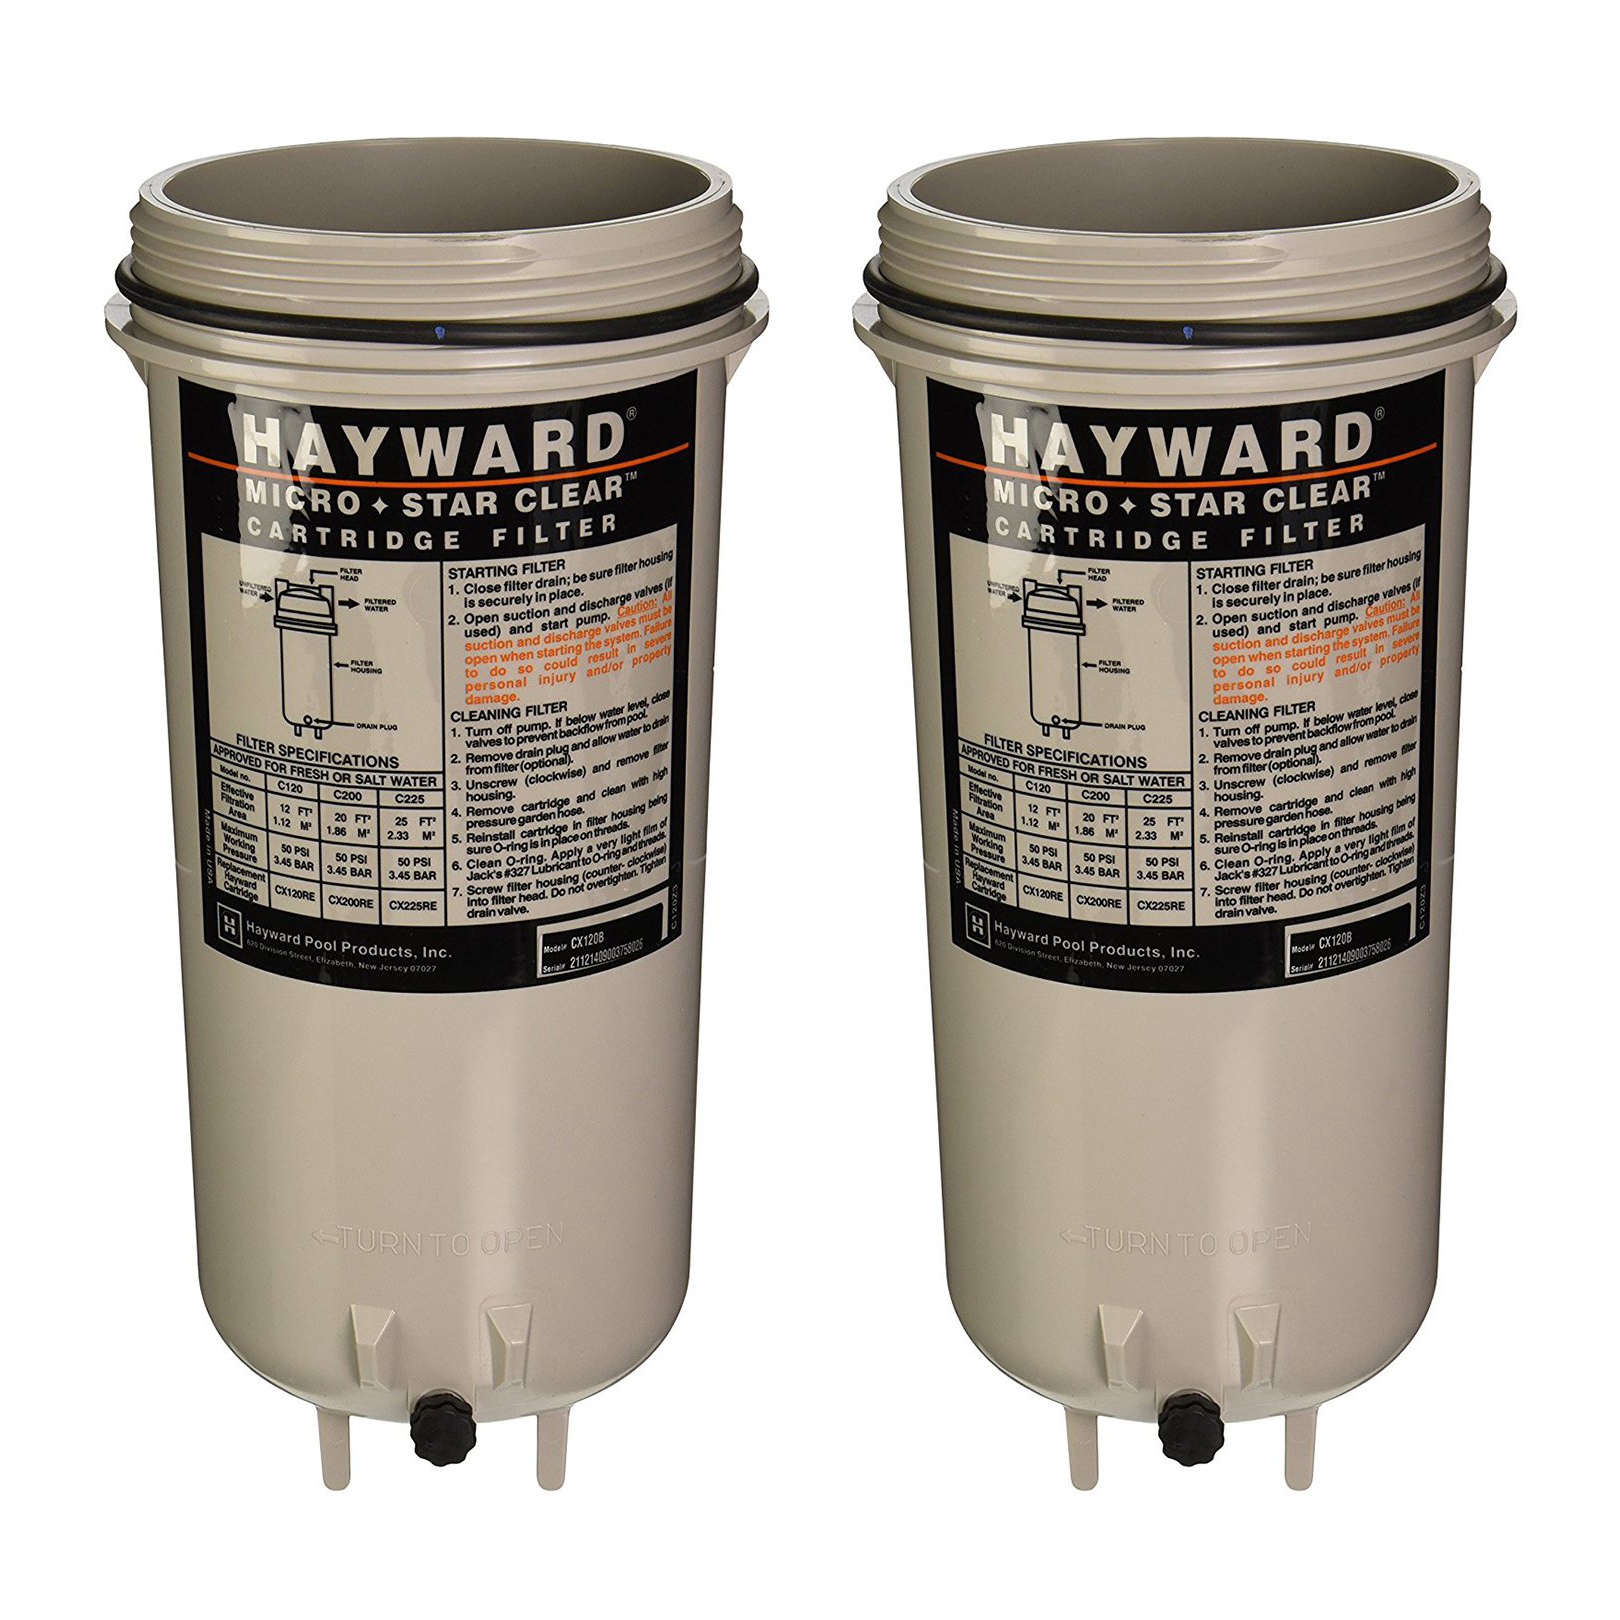 Details about Hayward CX120B Micro Star Clear Cartridge Filter Body for  Pool and Spa (2 Pack)